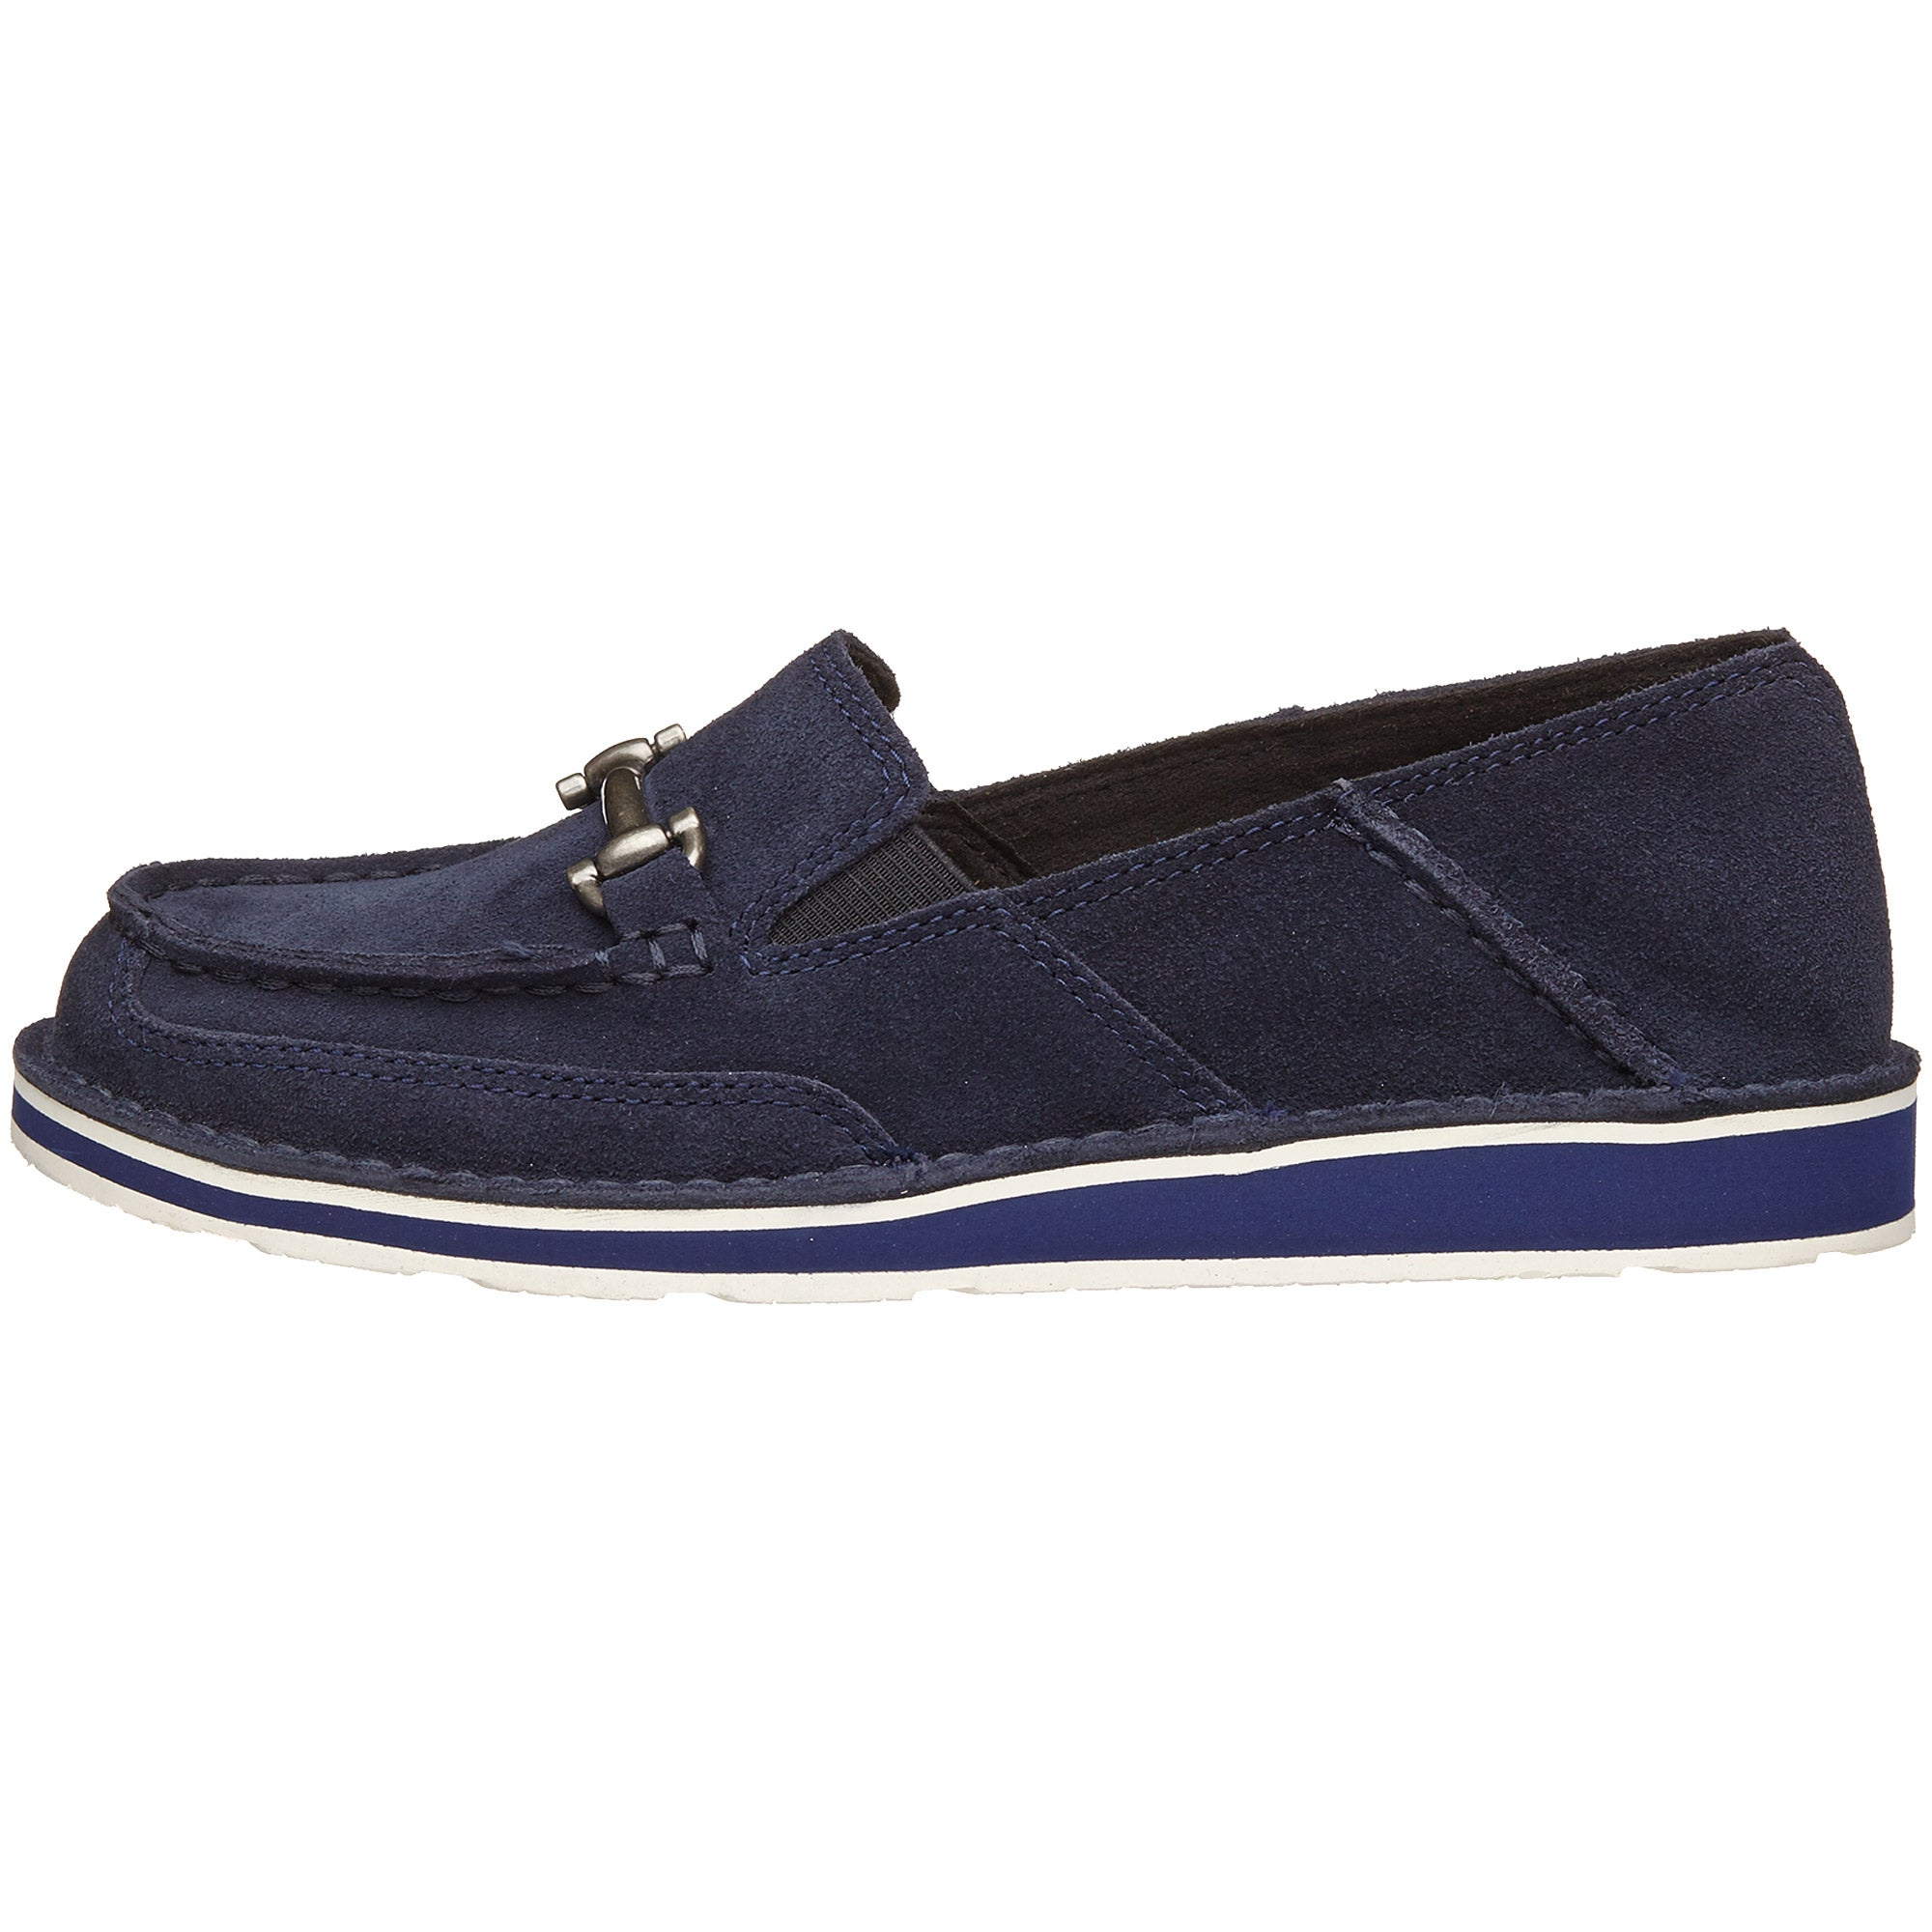 00e10a05350 Ariat Bit Cruiser Women s Shoes- Navy. view large. 360 View